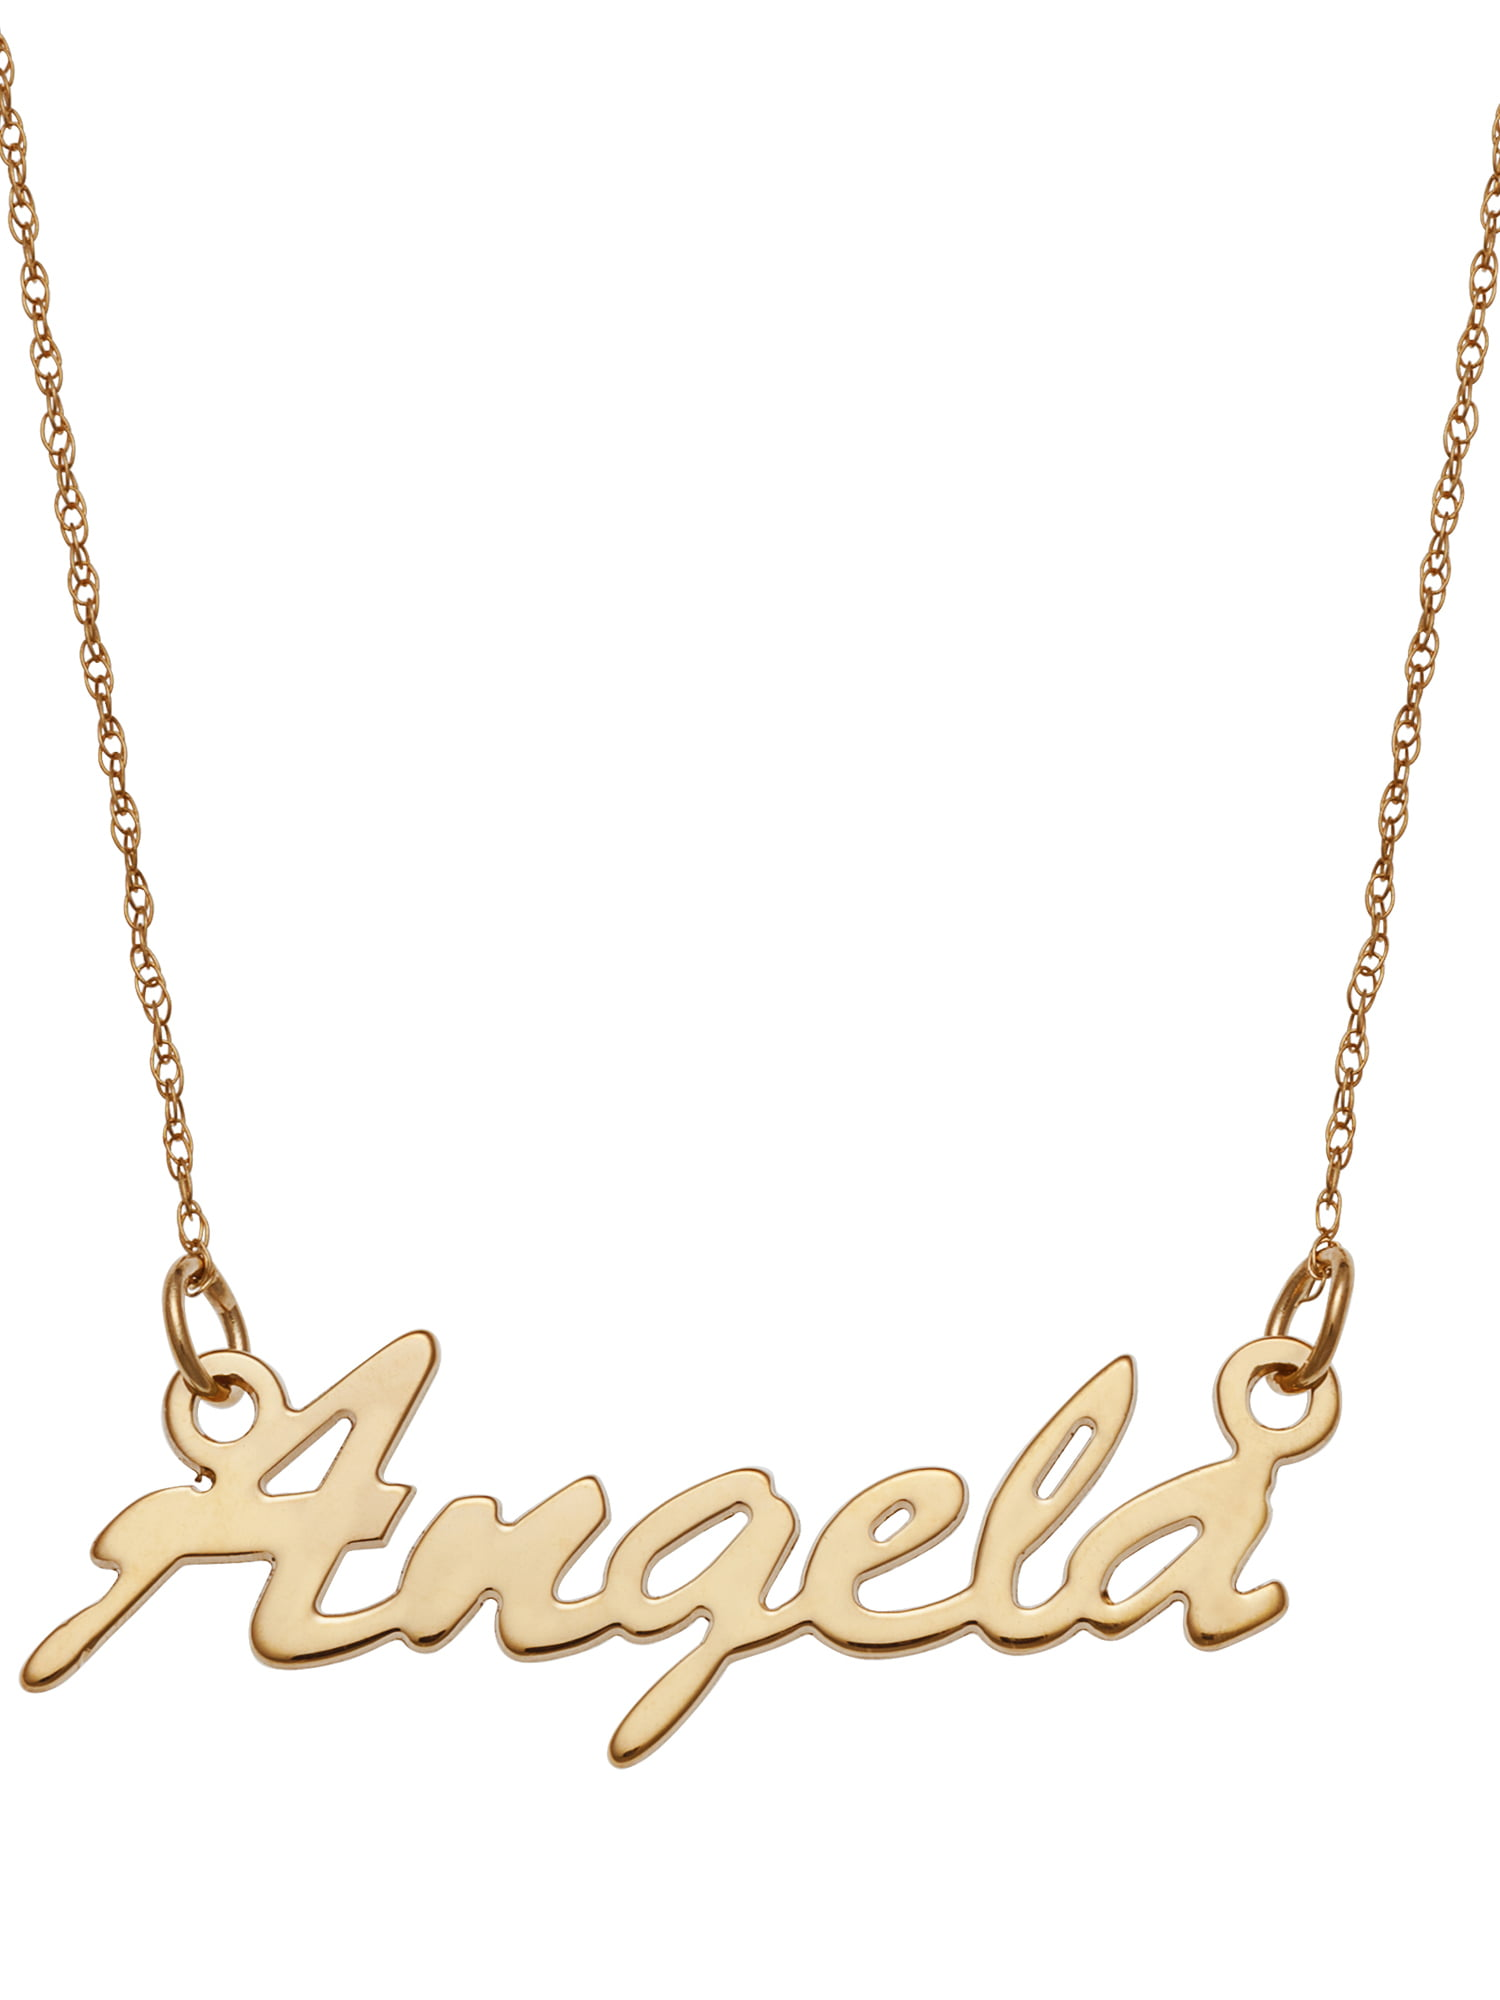 au name celebrity childs zoom as chains my seen necklace on baby fullxfull listing il style